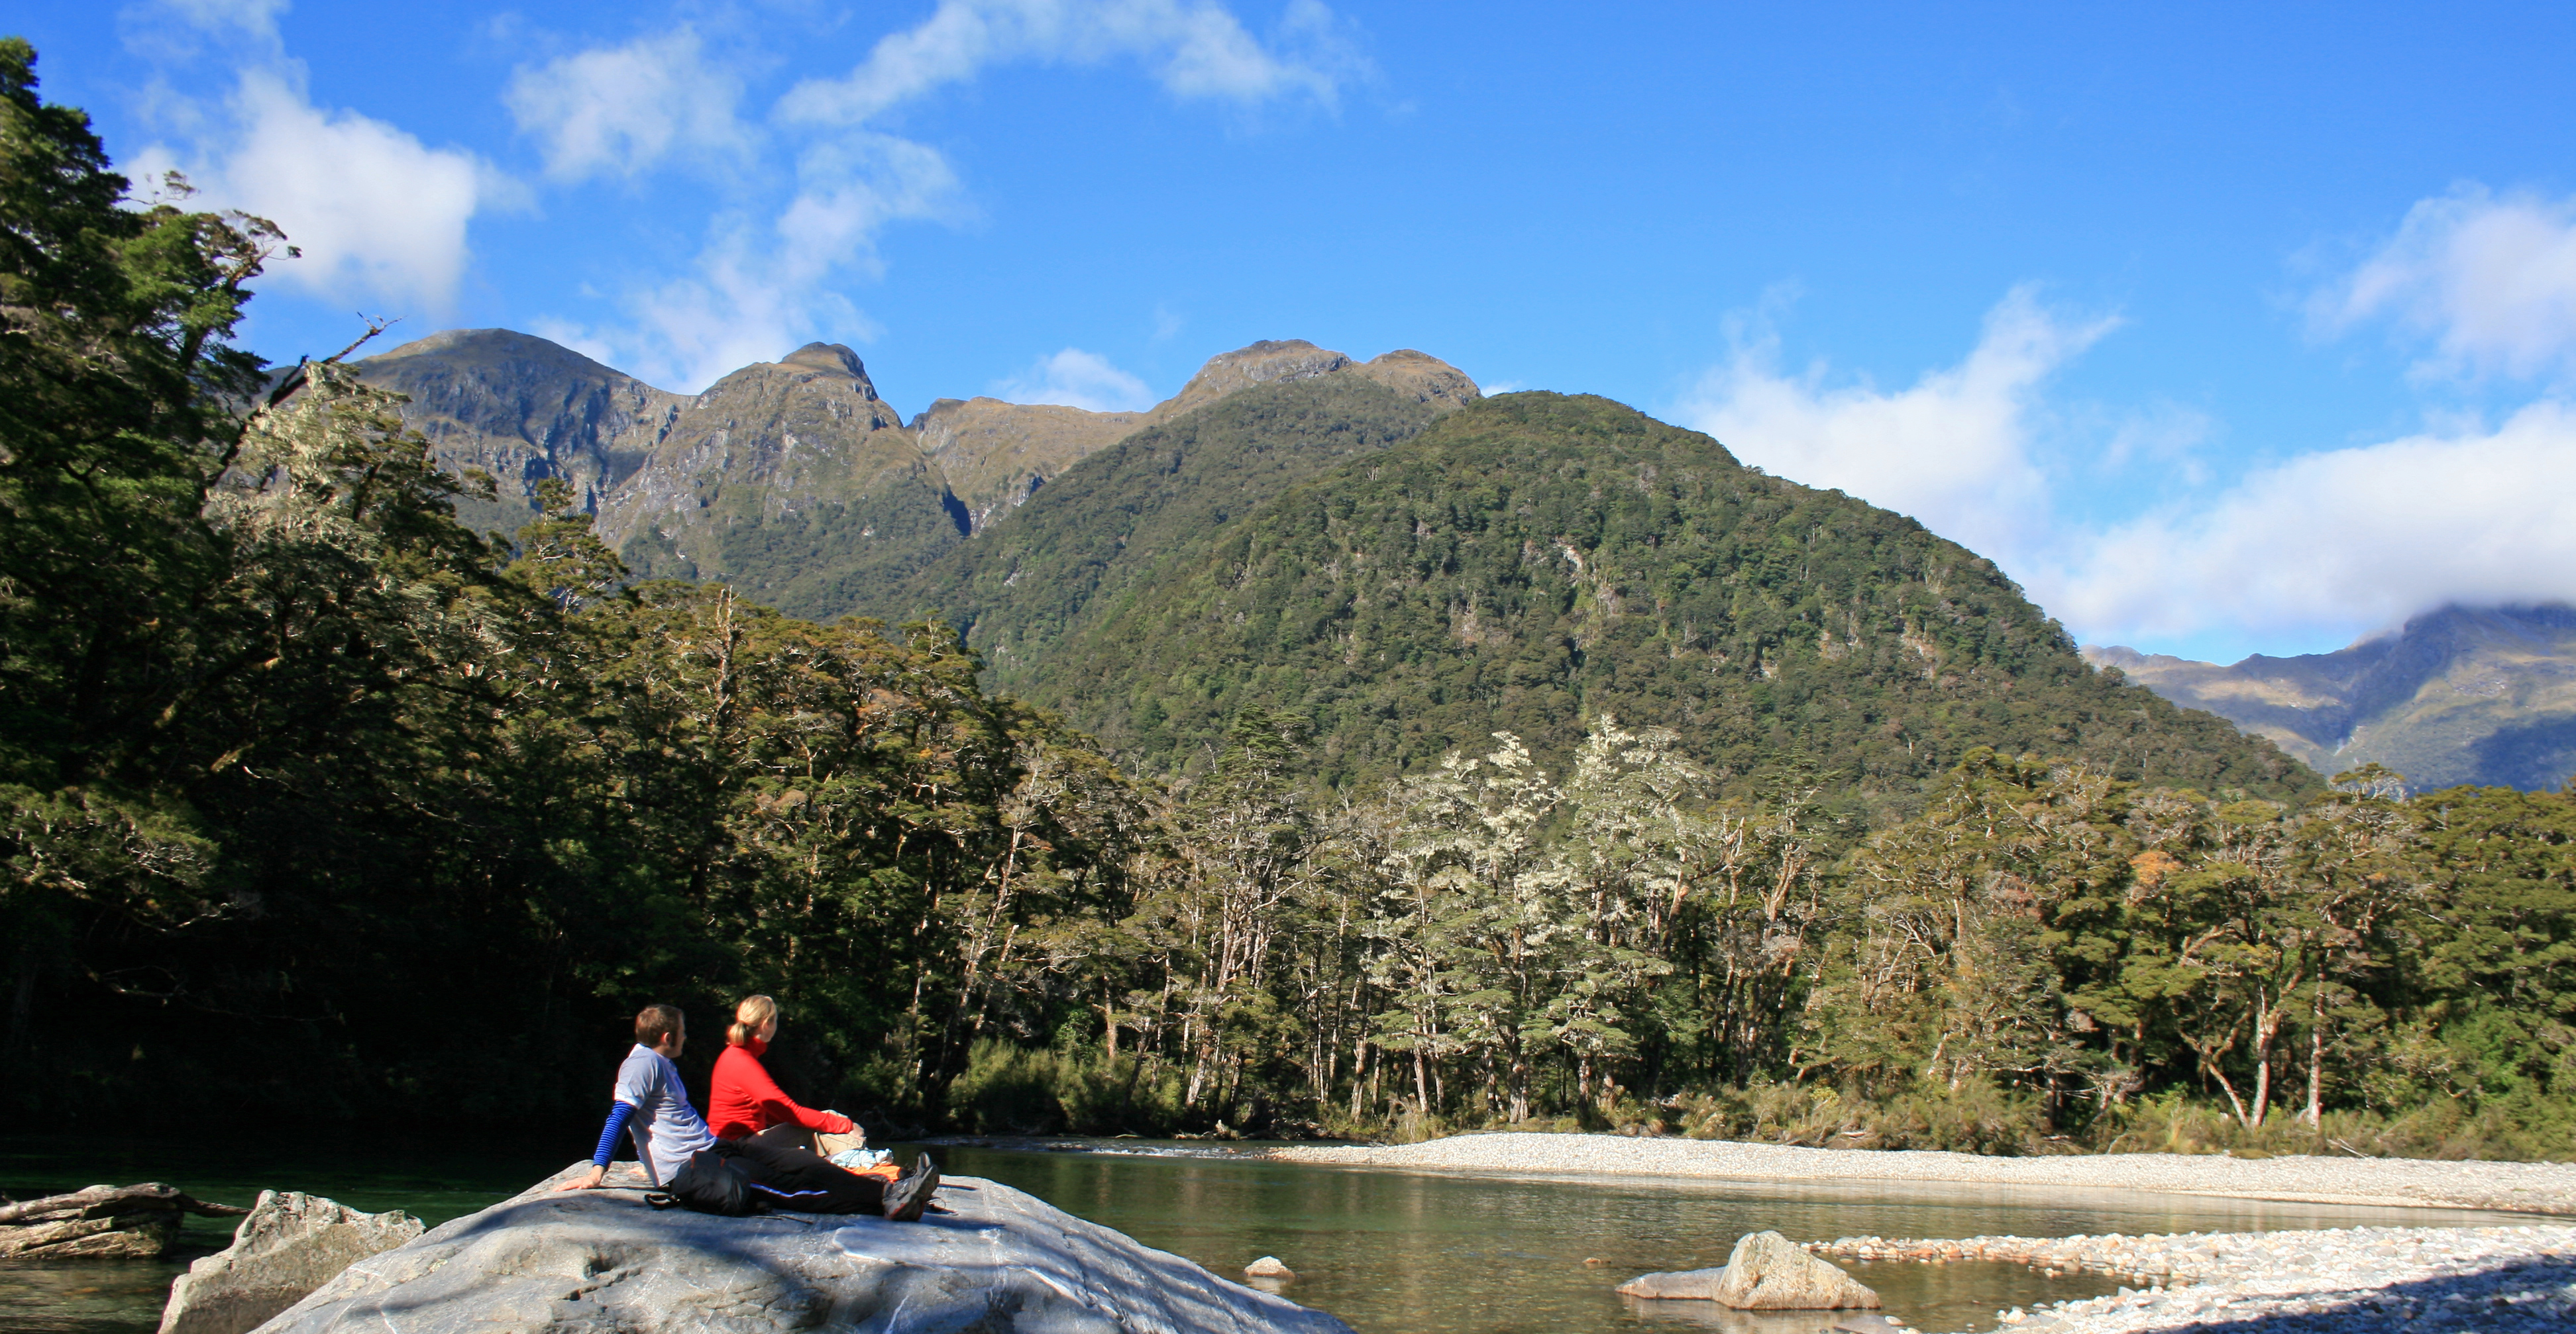 Walkers sit on a rock during the Milford Track Guided Day Walk